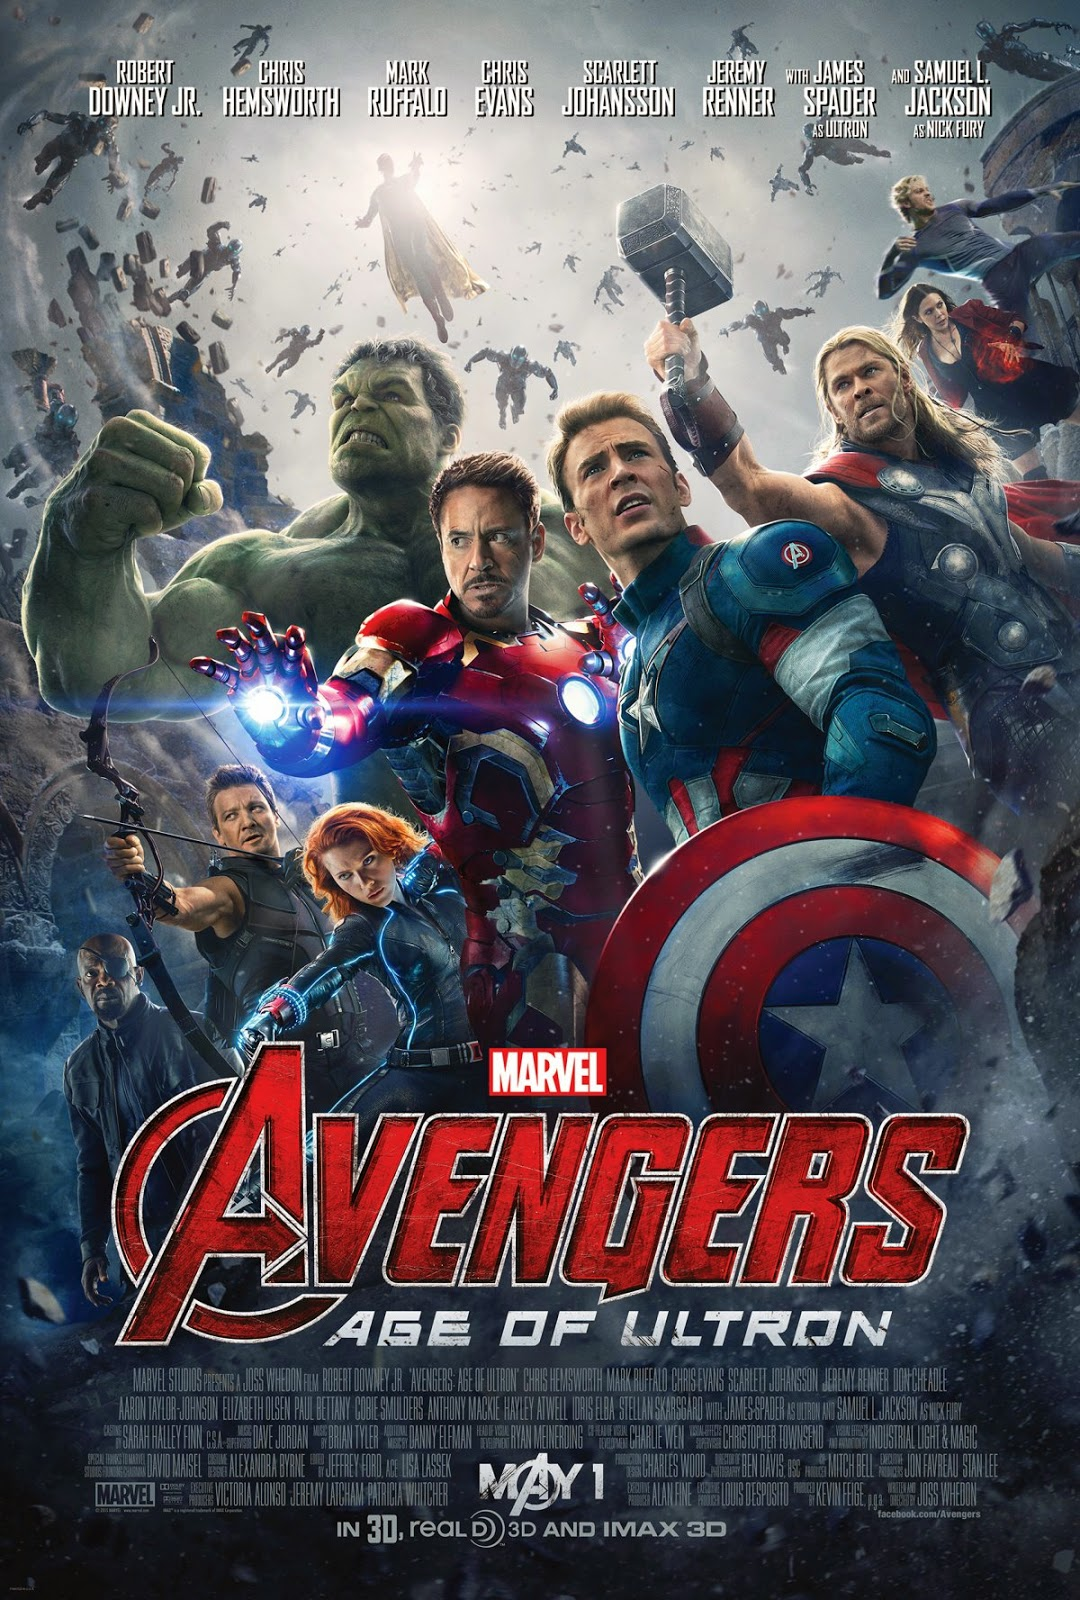 Marvel Avengers Age of Ultron movie poster